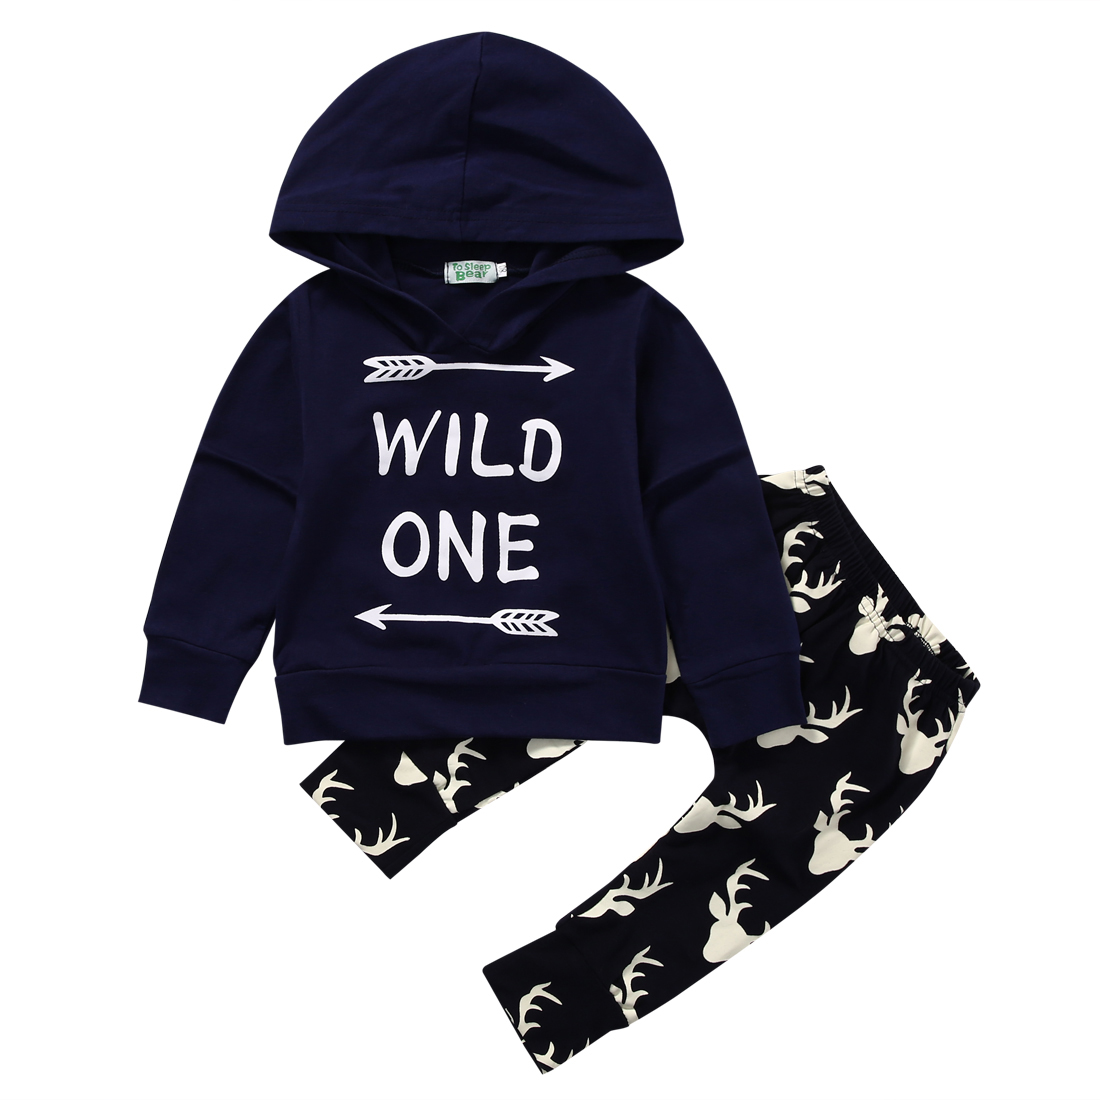 2017 Toddler Kids Clothes Infant Baby Boy Girl Long Sleeve Deer Hooded Top+Pant Trouser 2PCS Outfits Children Clothing Set